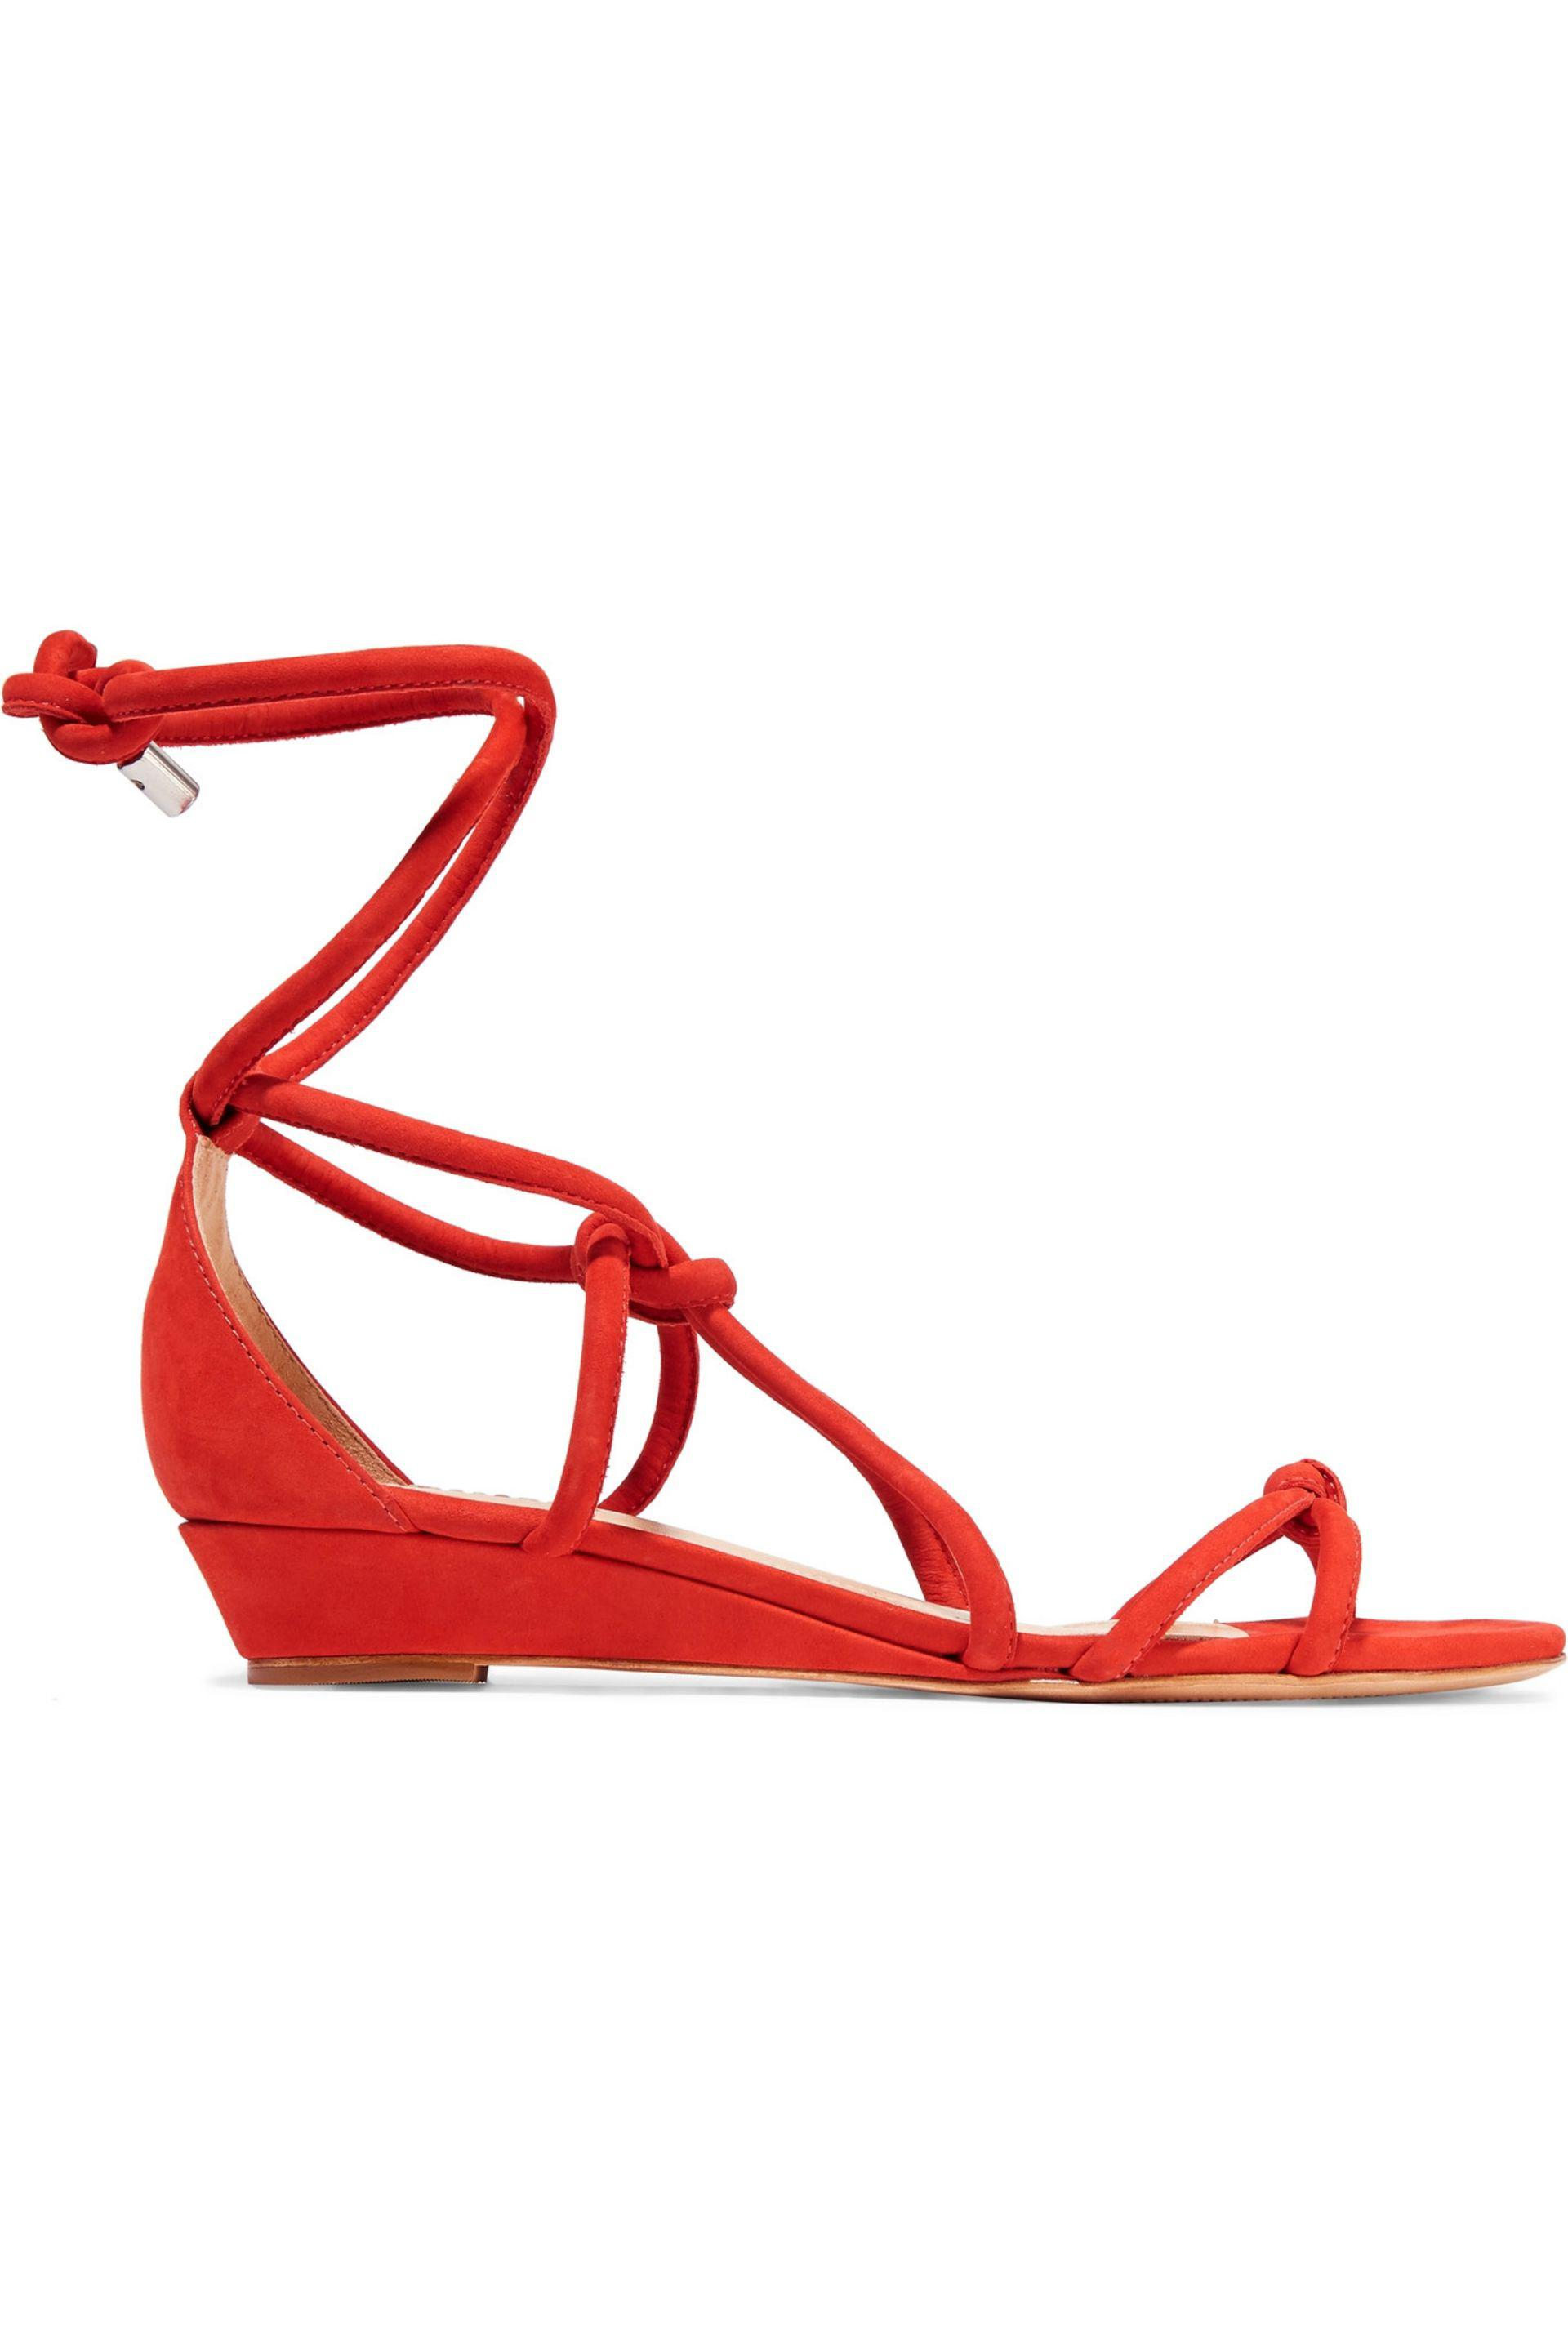 6a04f05ee72 Schutz Margarete Lace-up Suede Wedge Sandals in Red - Lyst